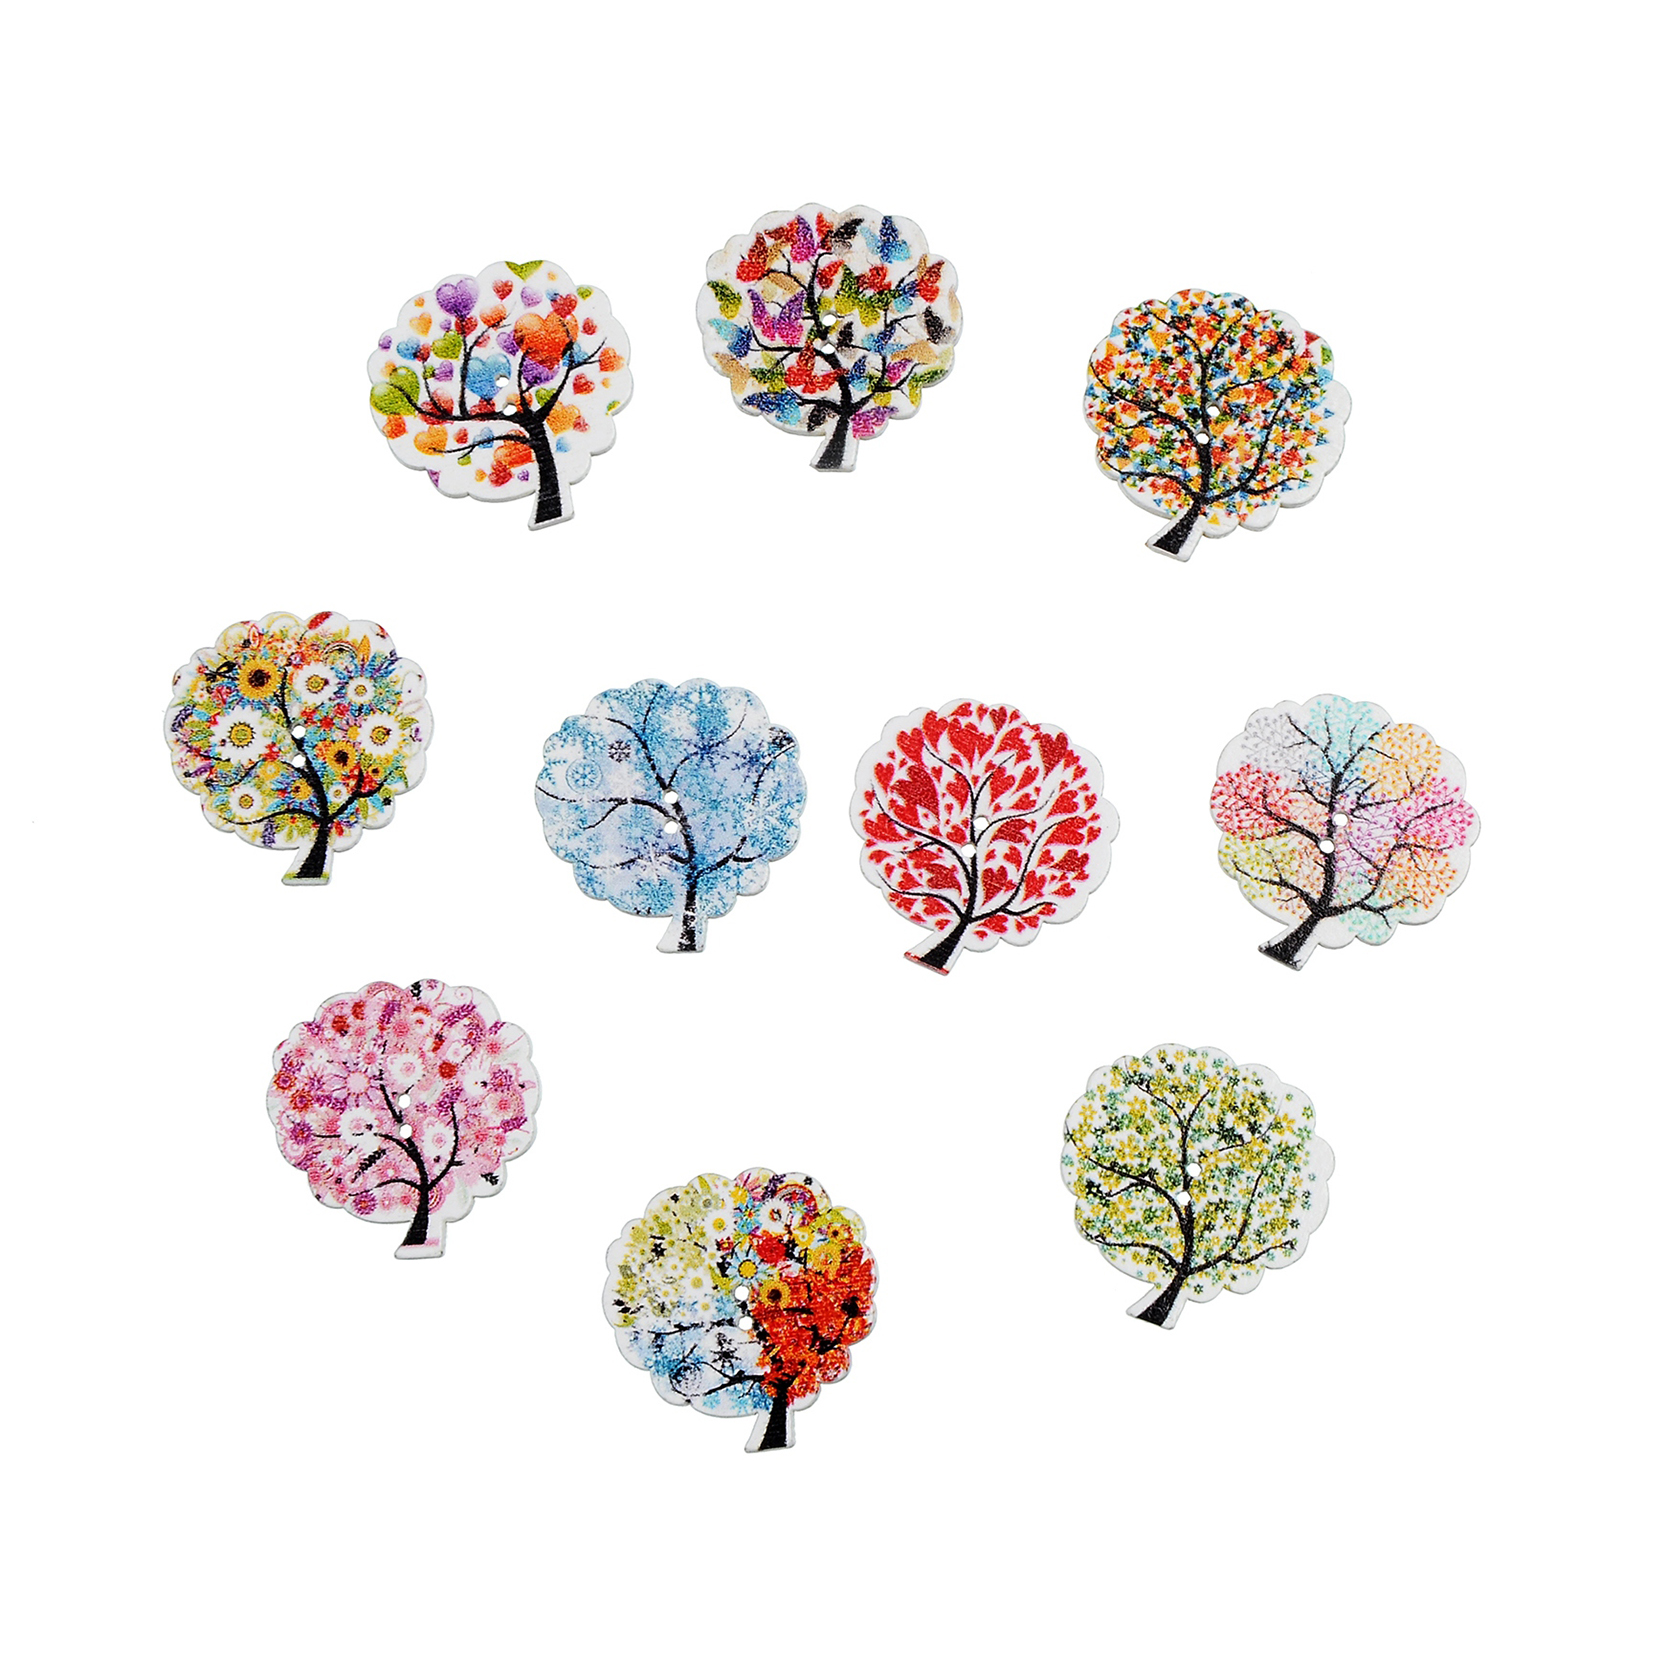 50Pcs New Tree Design 2 Holes Wooden Buttons Sewing Buttons Wood Craft Scrapbooking Clothing Accessories DIY in Buttons from Home Garden